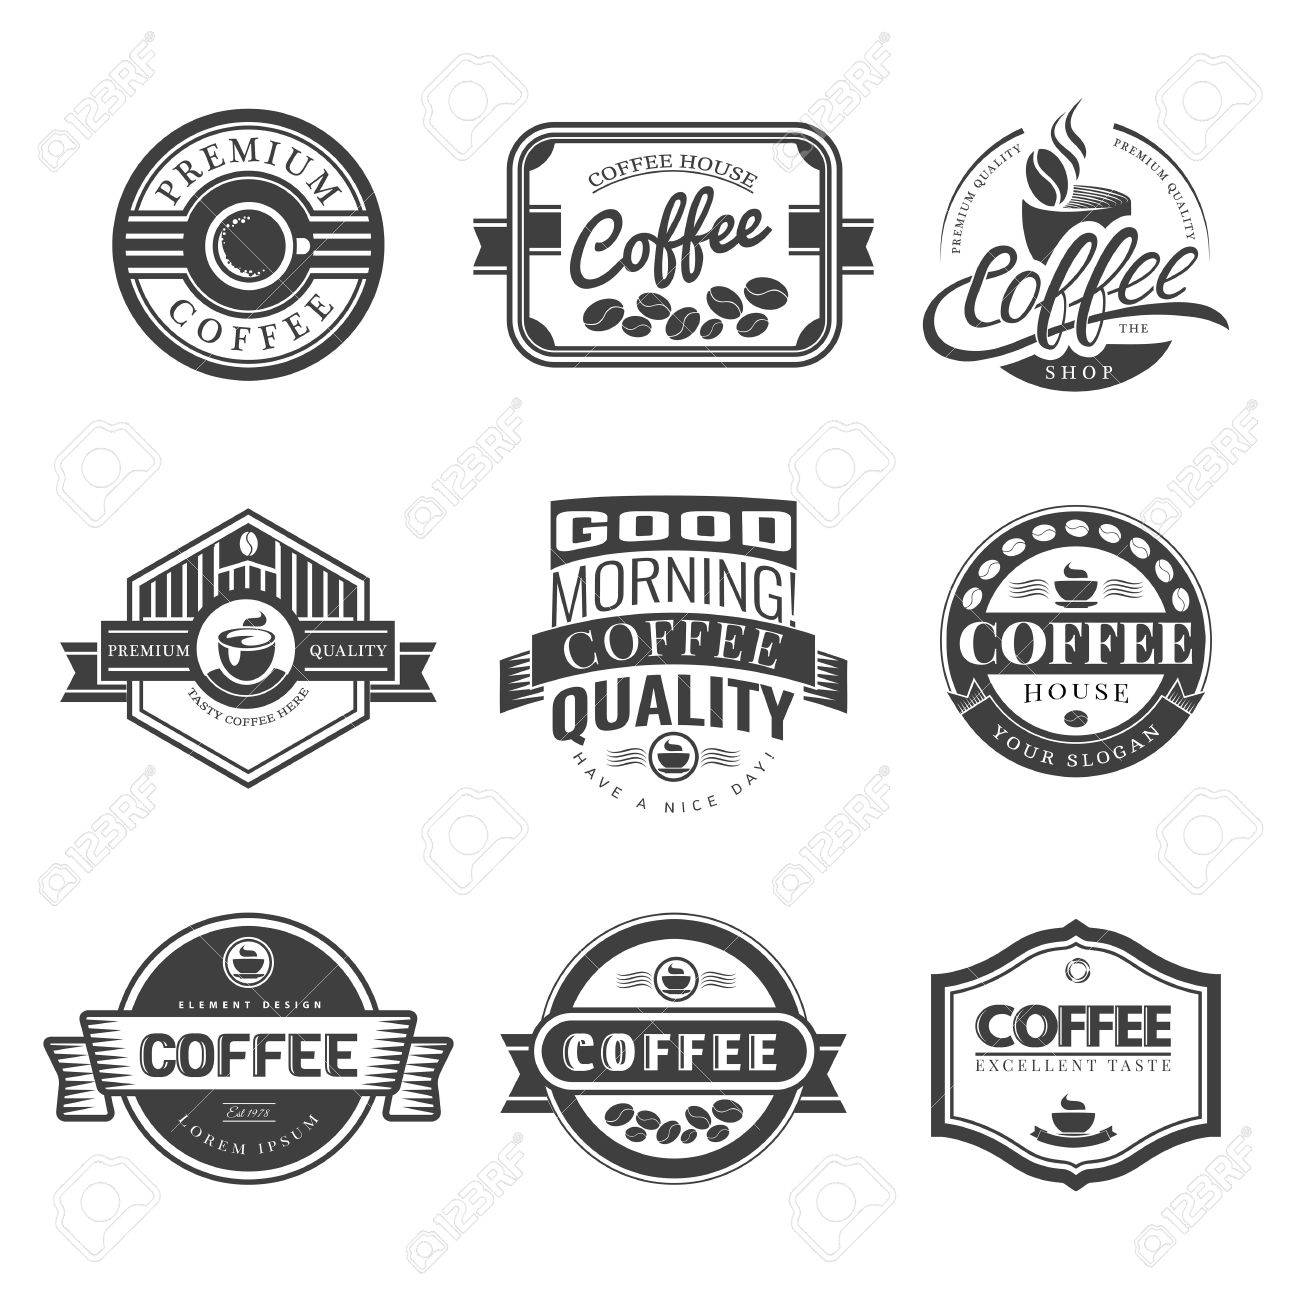 coffee vintage labels logo template collection vector symbols and icons of retro style mocha